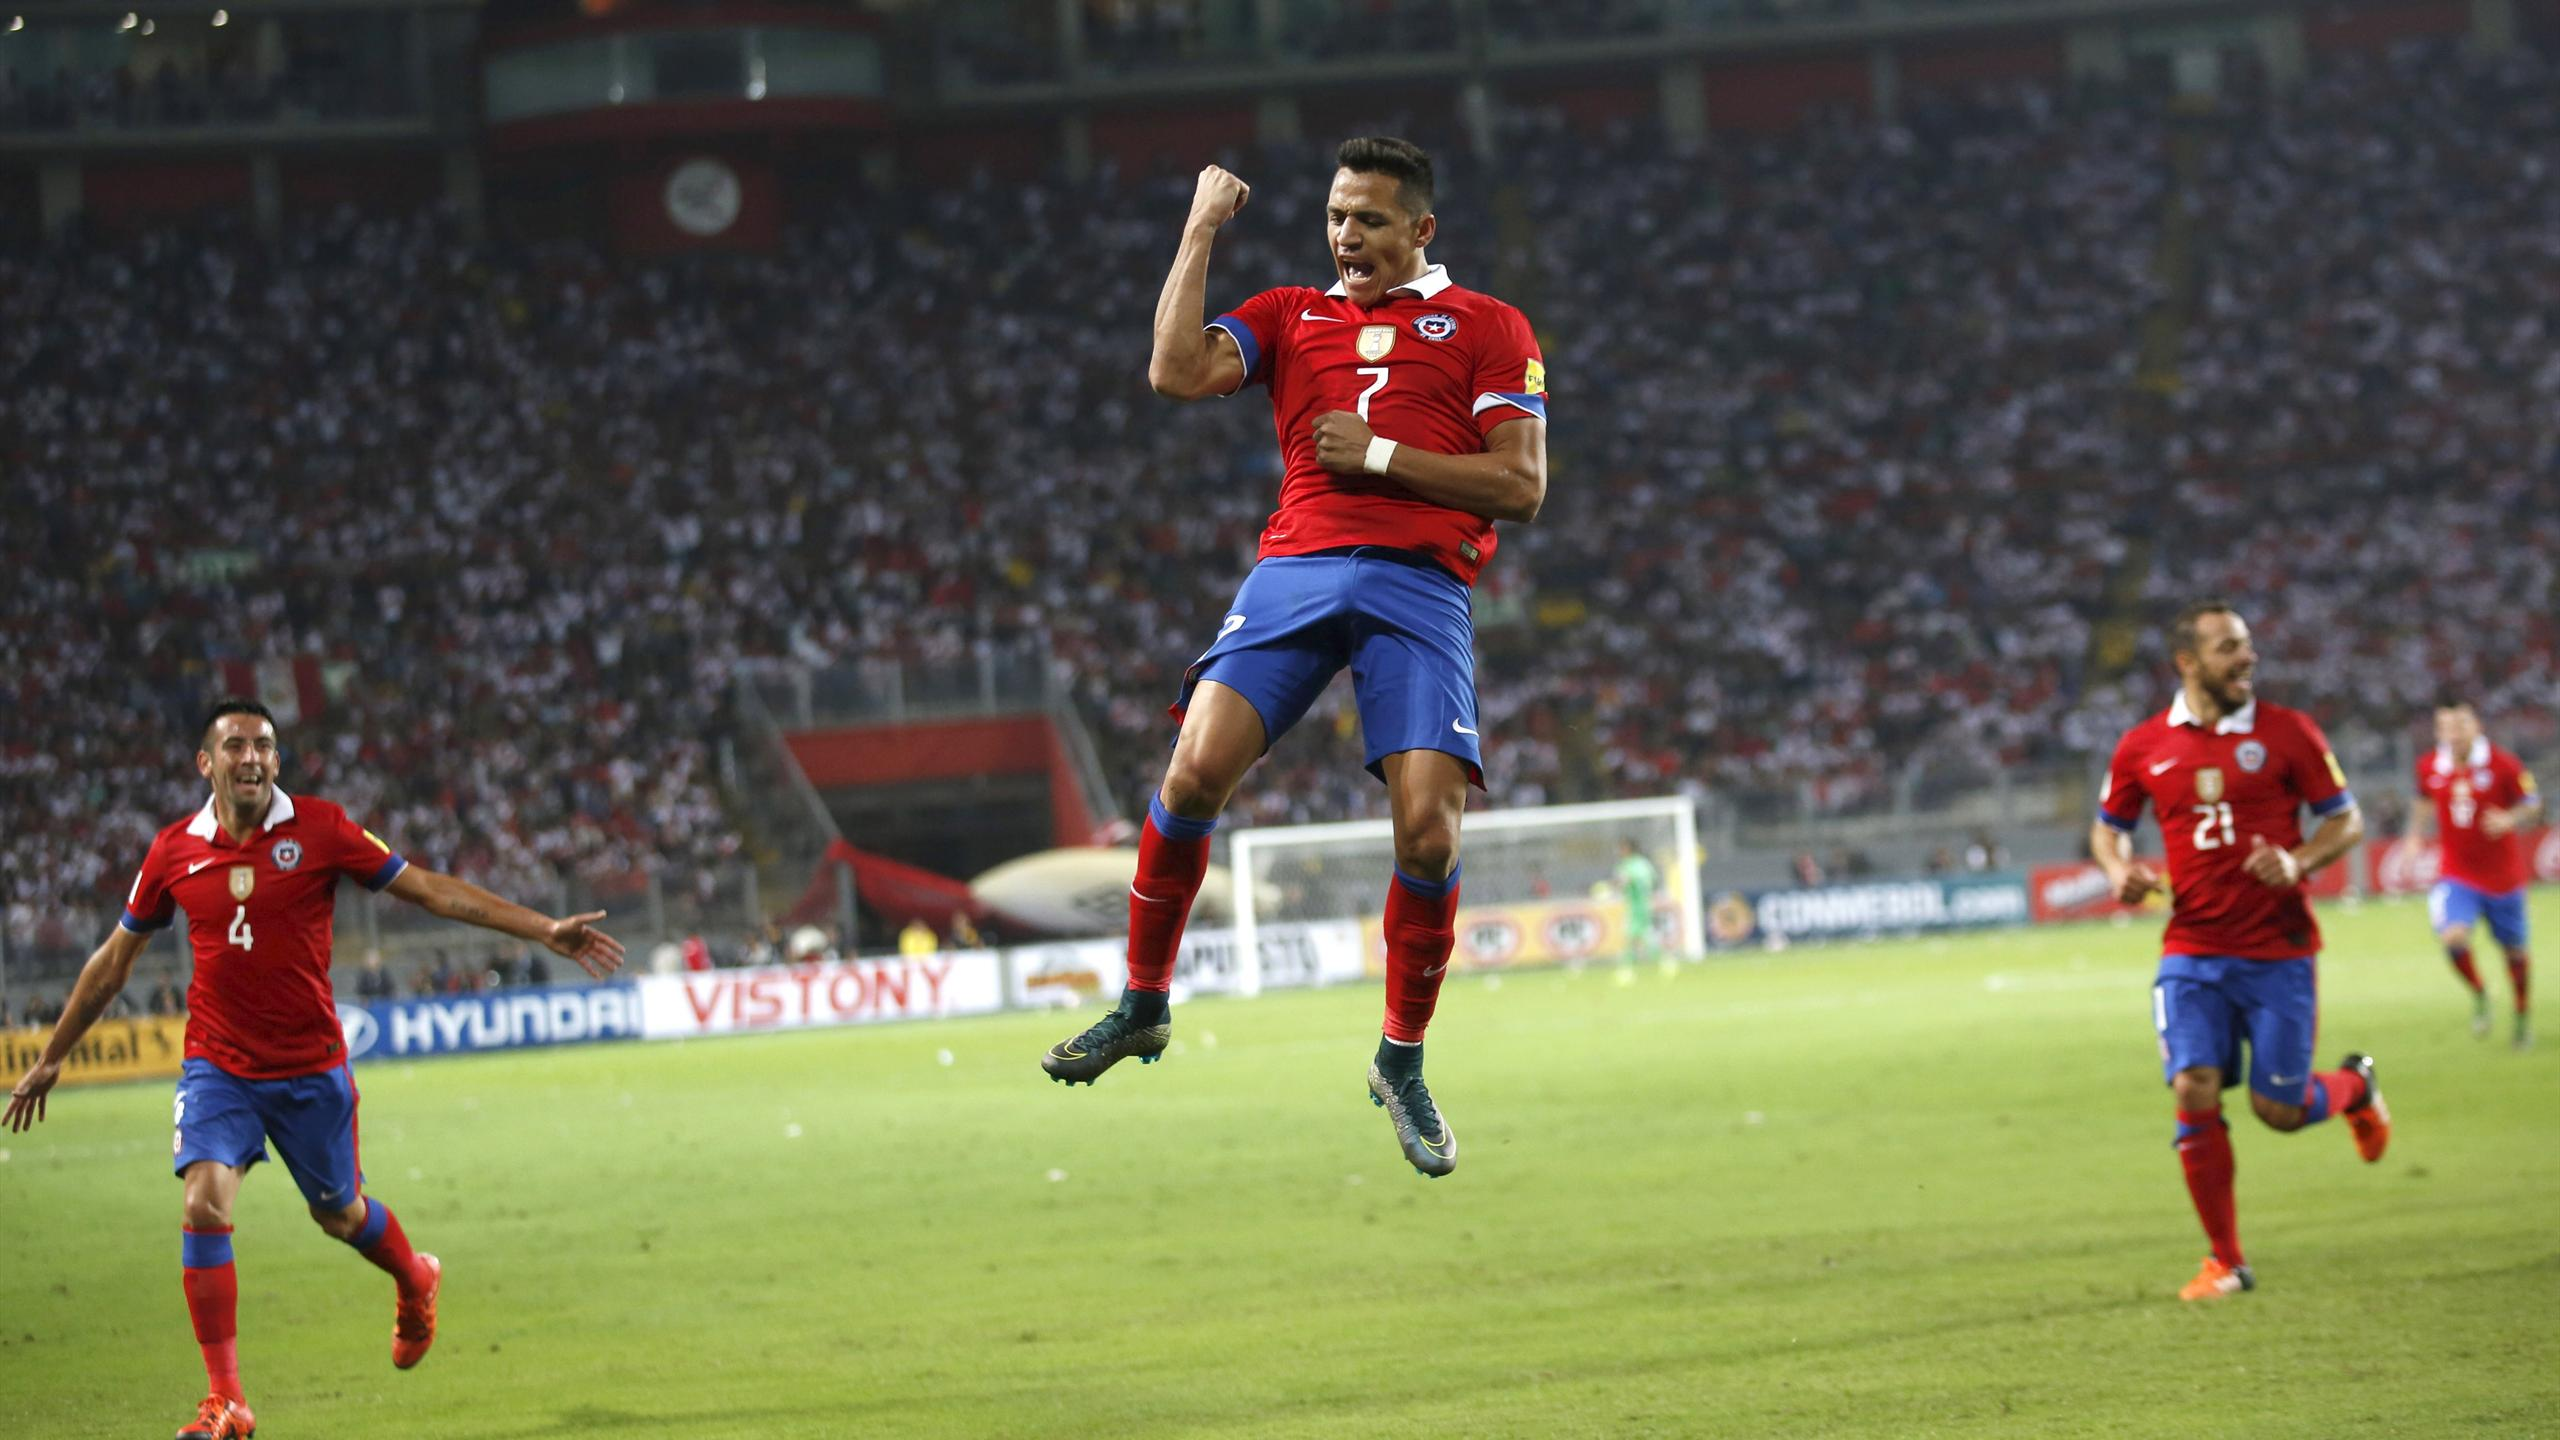 Chile's Alexis Sanchez (C) celebrates his goal against Peru during their 2018 World Cup qualifying match at Nacional stadium in Lima